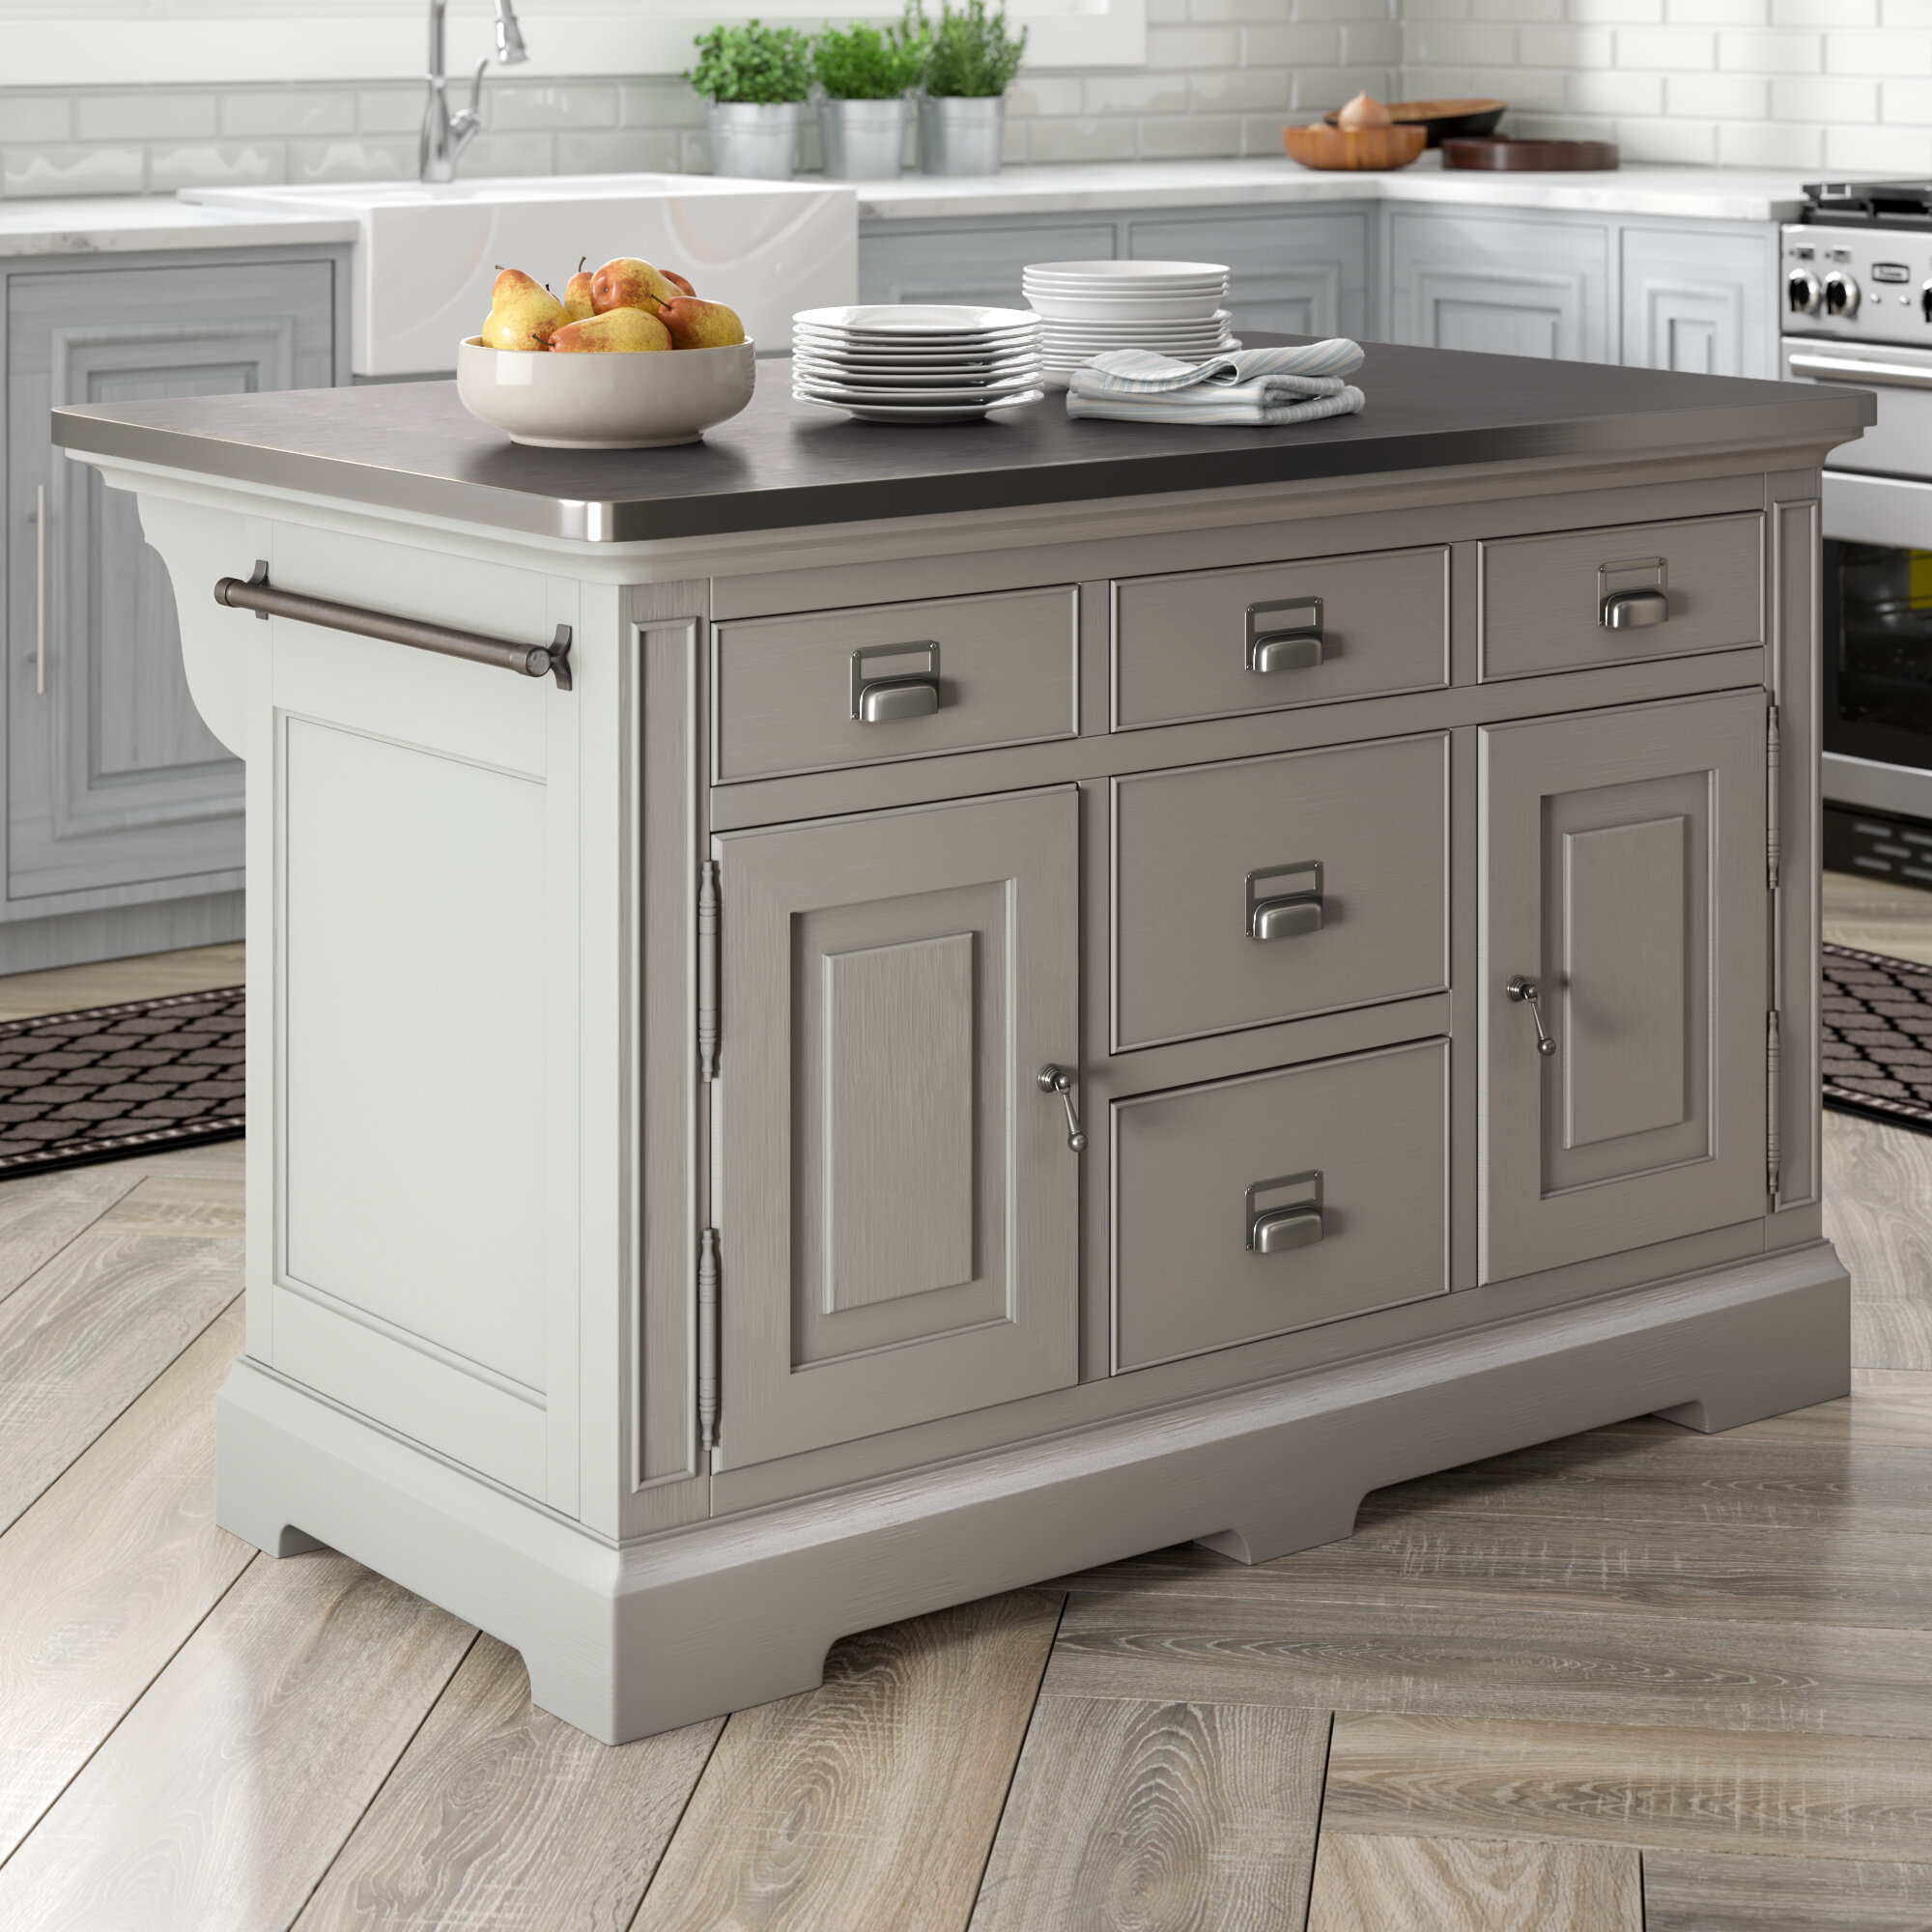 Bailes Kitchen Island Stainless Steel Counter Top